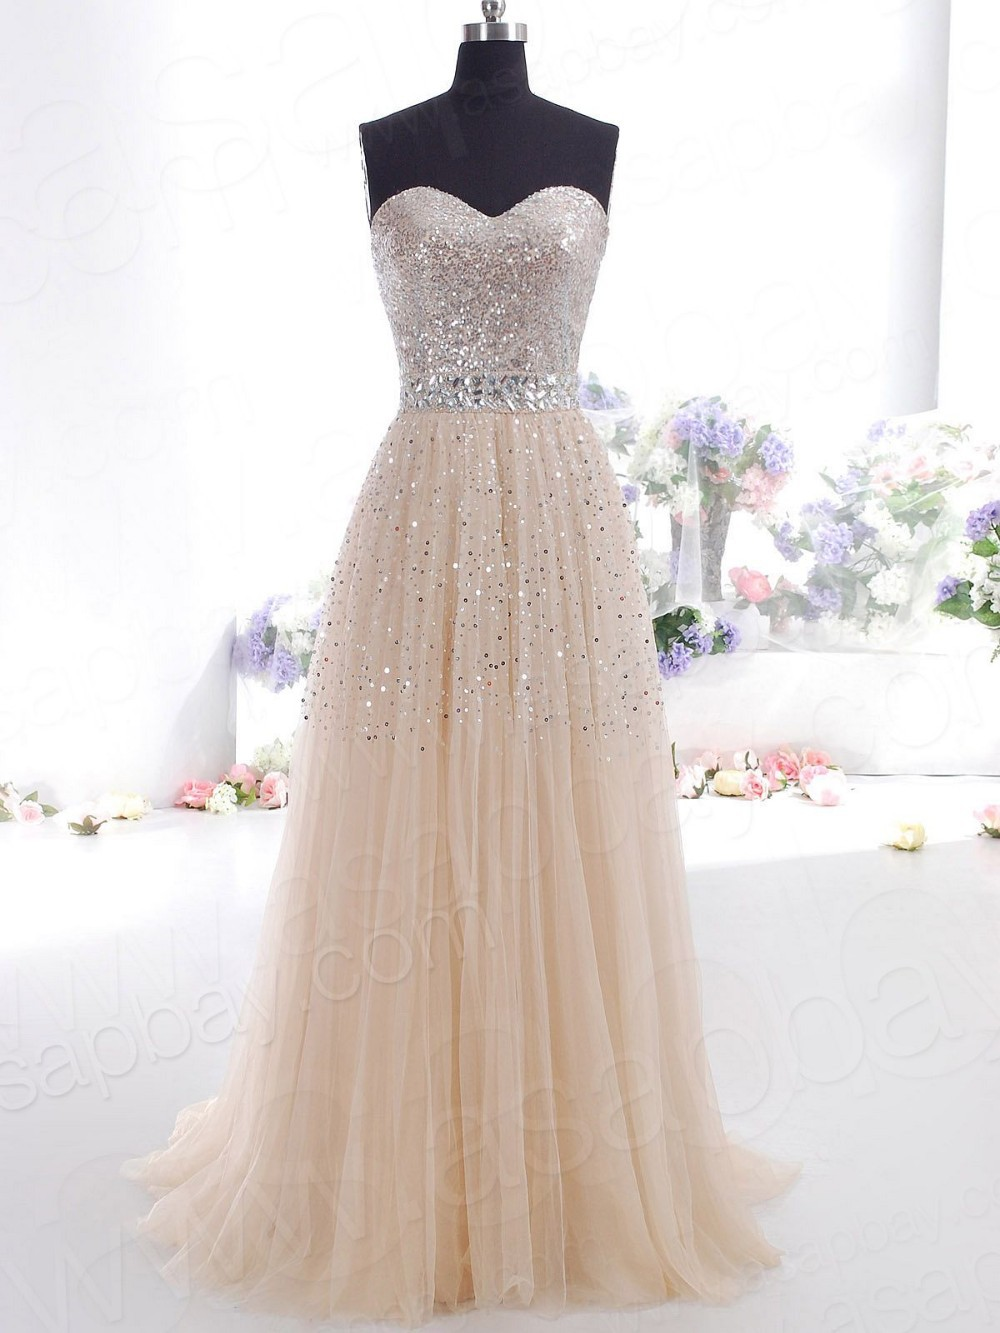 Champagne Long Prom Dresses Sweetheart Tulle Beaded Evening Party Evening Gown SIZE 4 6 8 10 12 14 16/Lace up-in Prom Dresses from Apparel & Accessories on Aliexpress.com